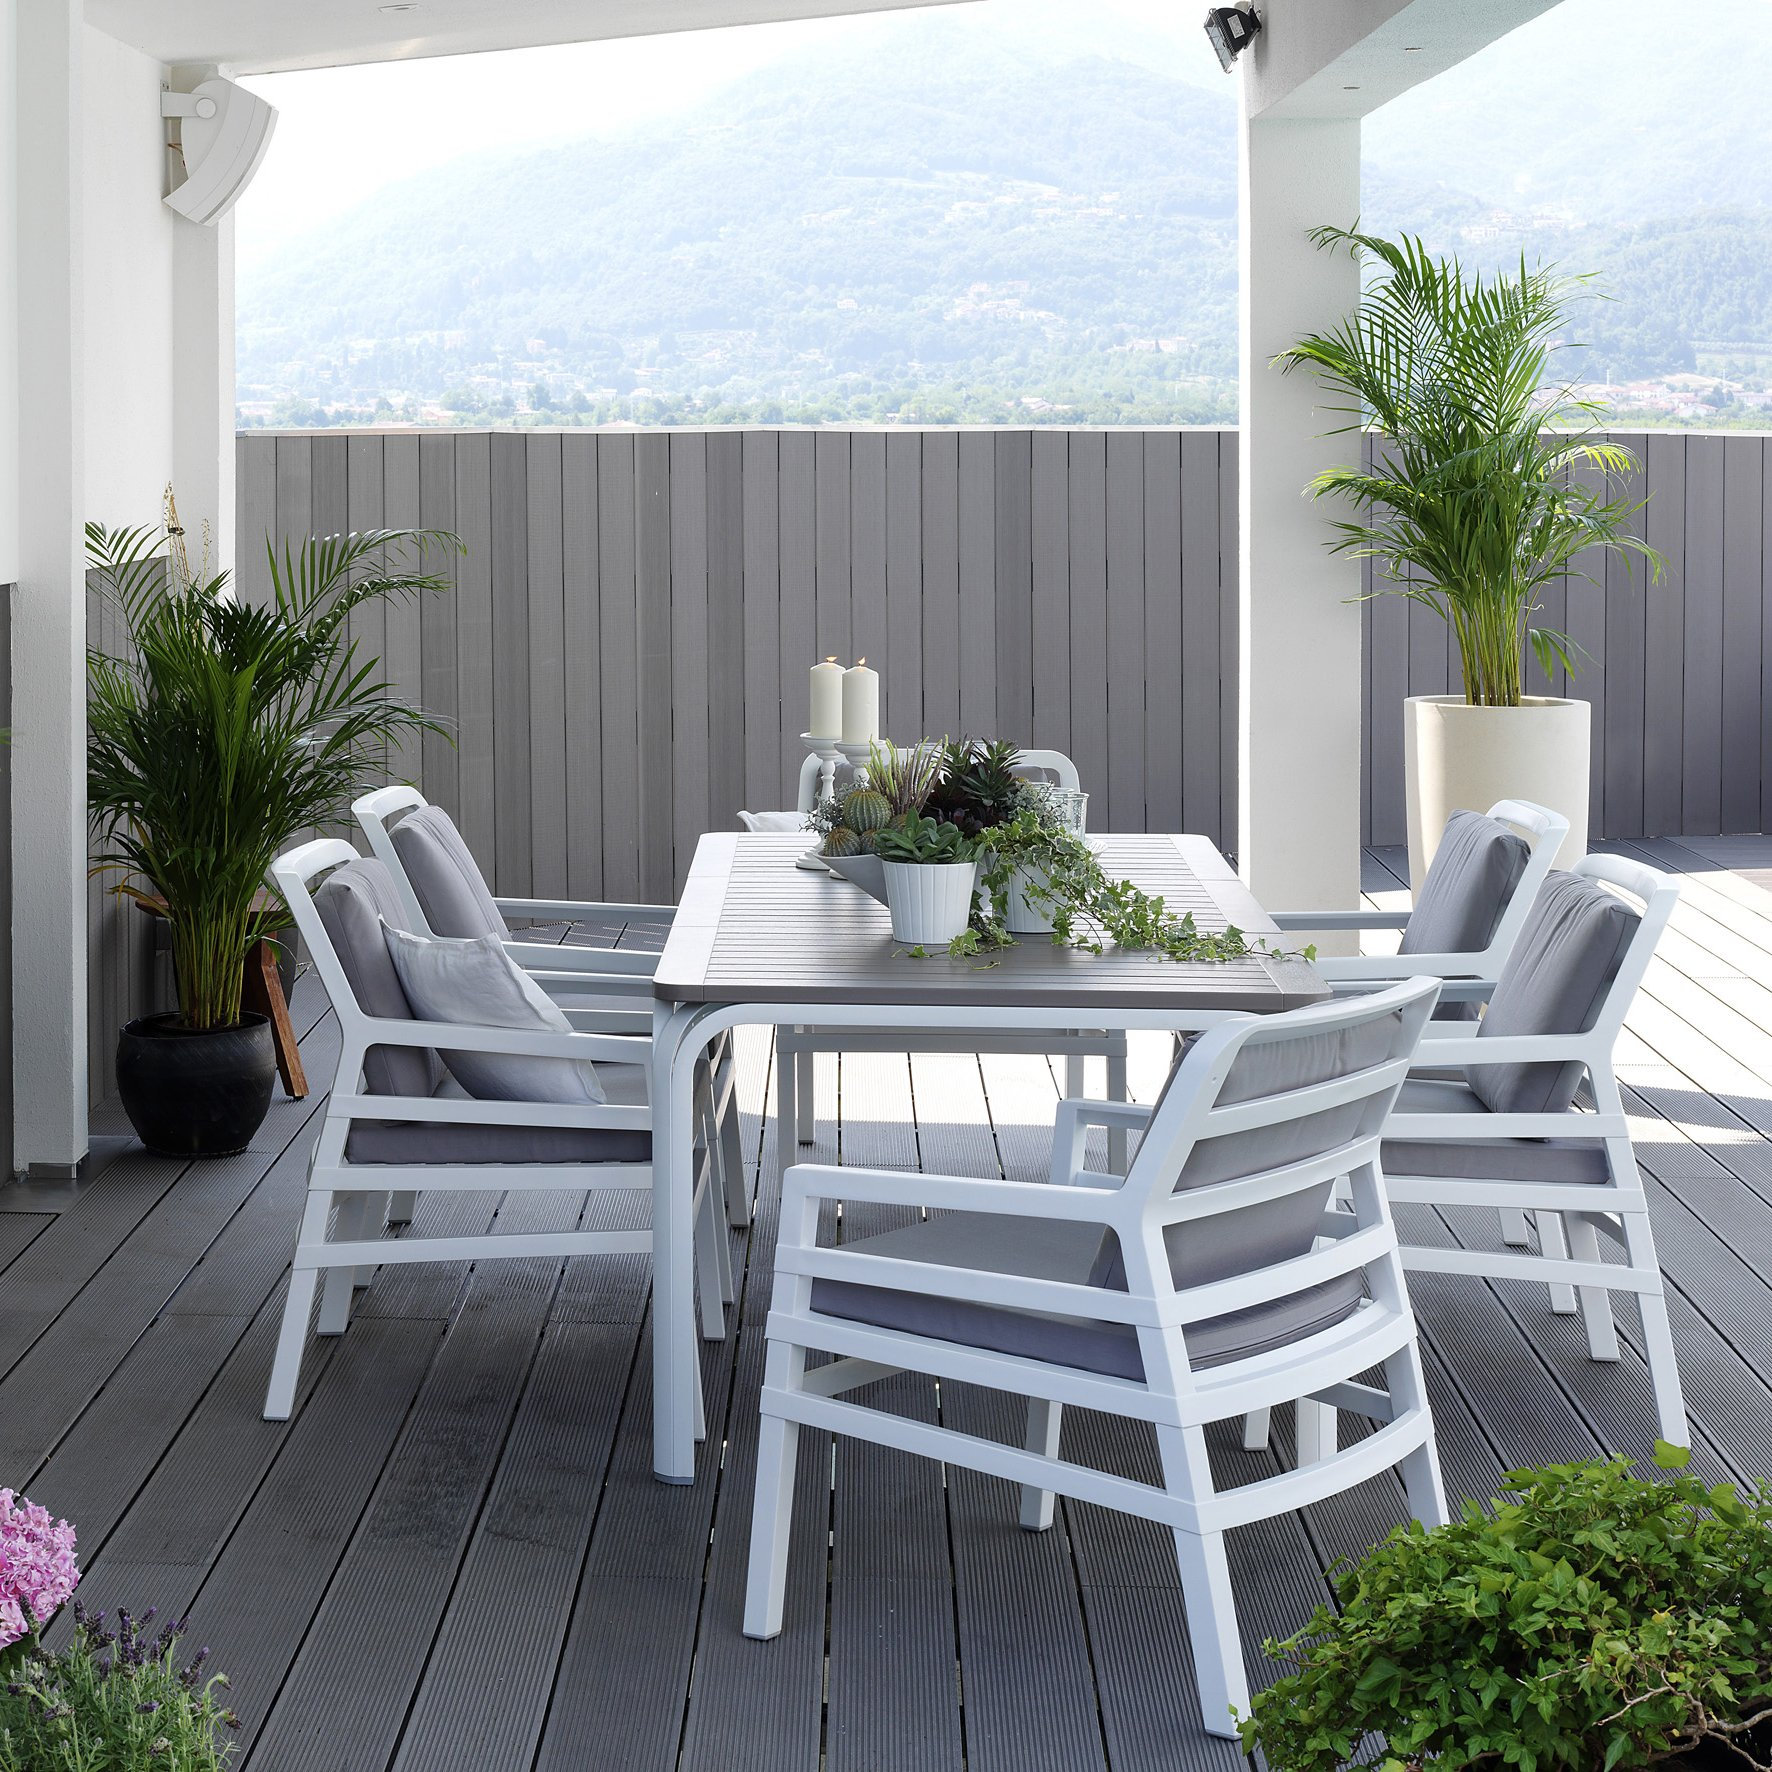 piece outdoor dining setting 2499 00 gst the aria outdoor dining